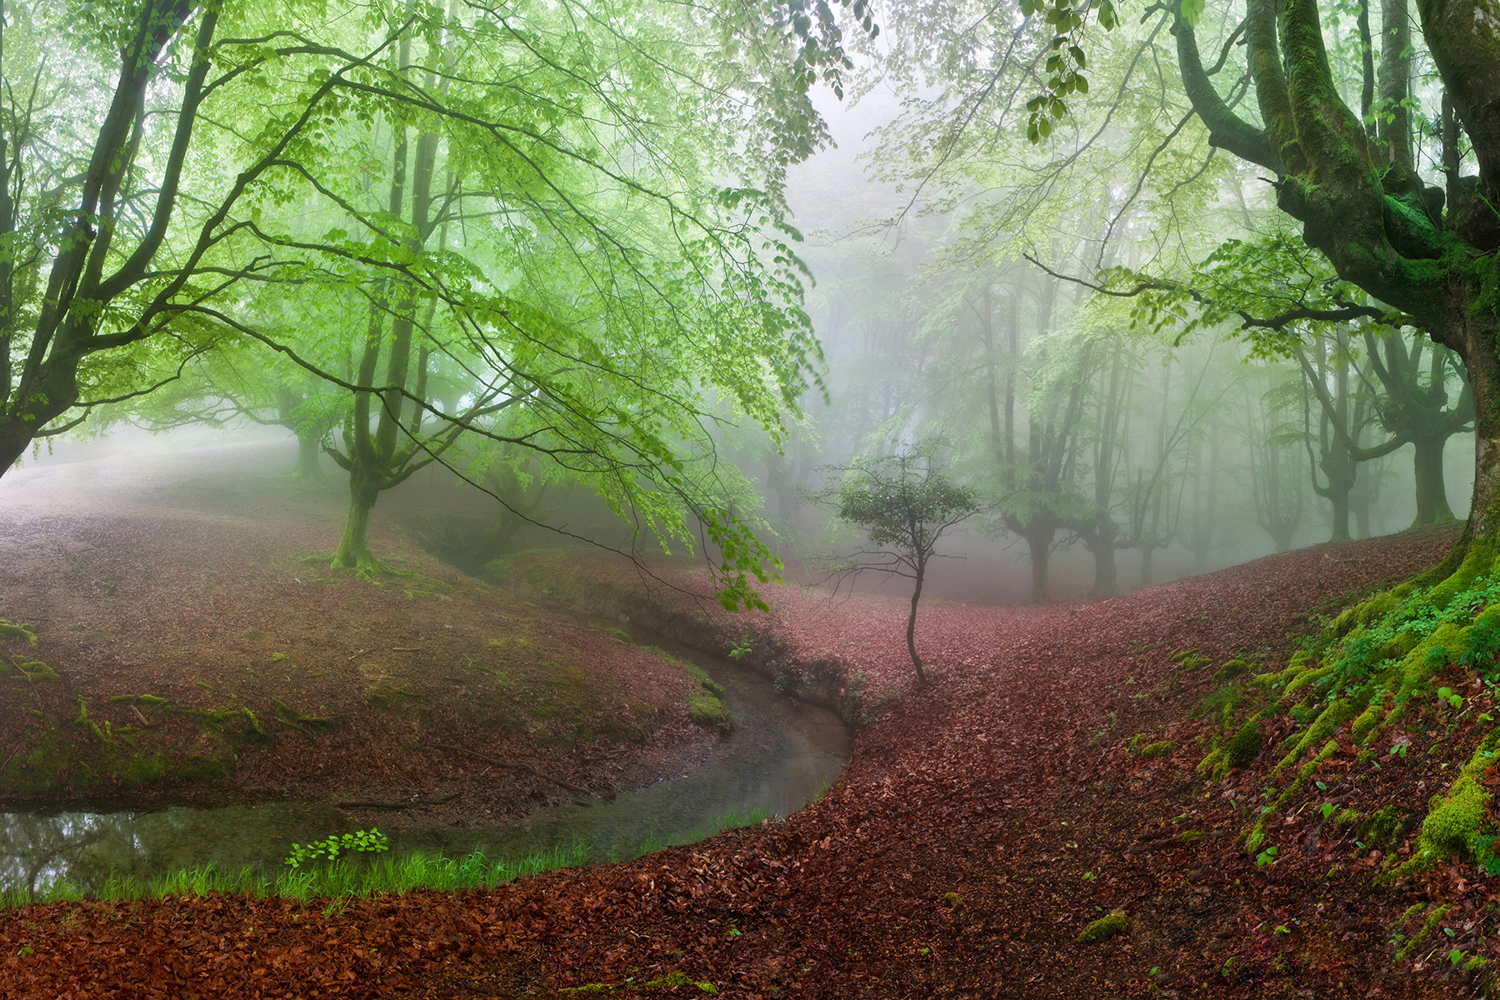 Fototapete The Forest Maravillador Iii